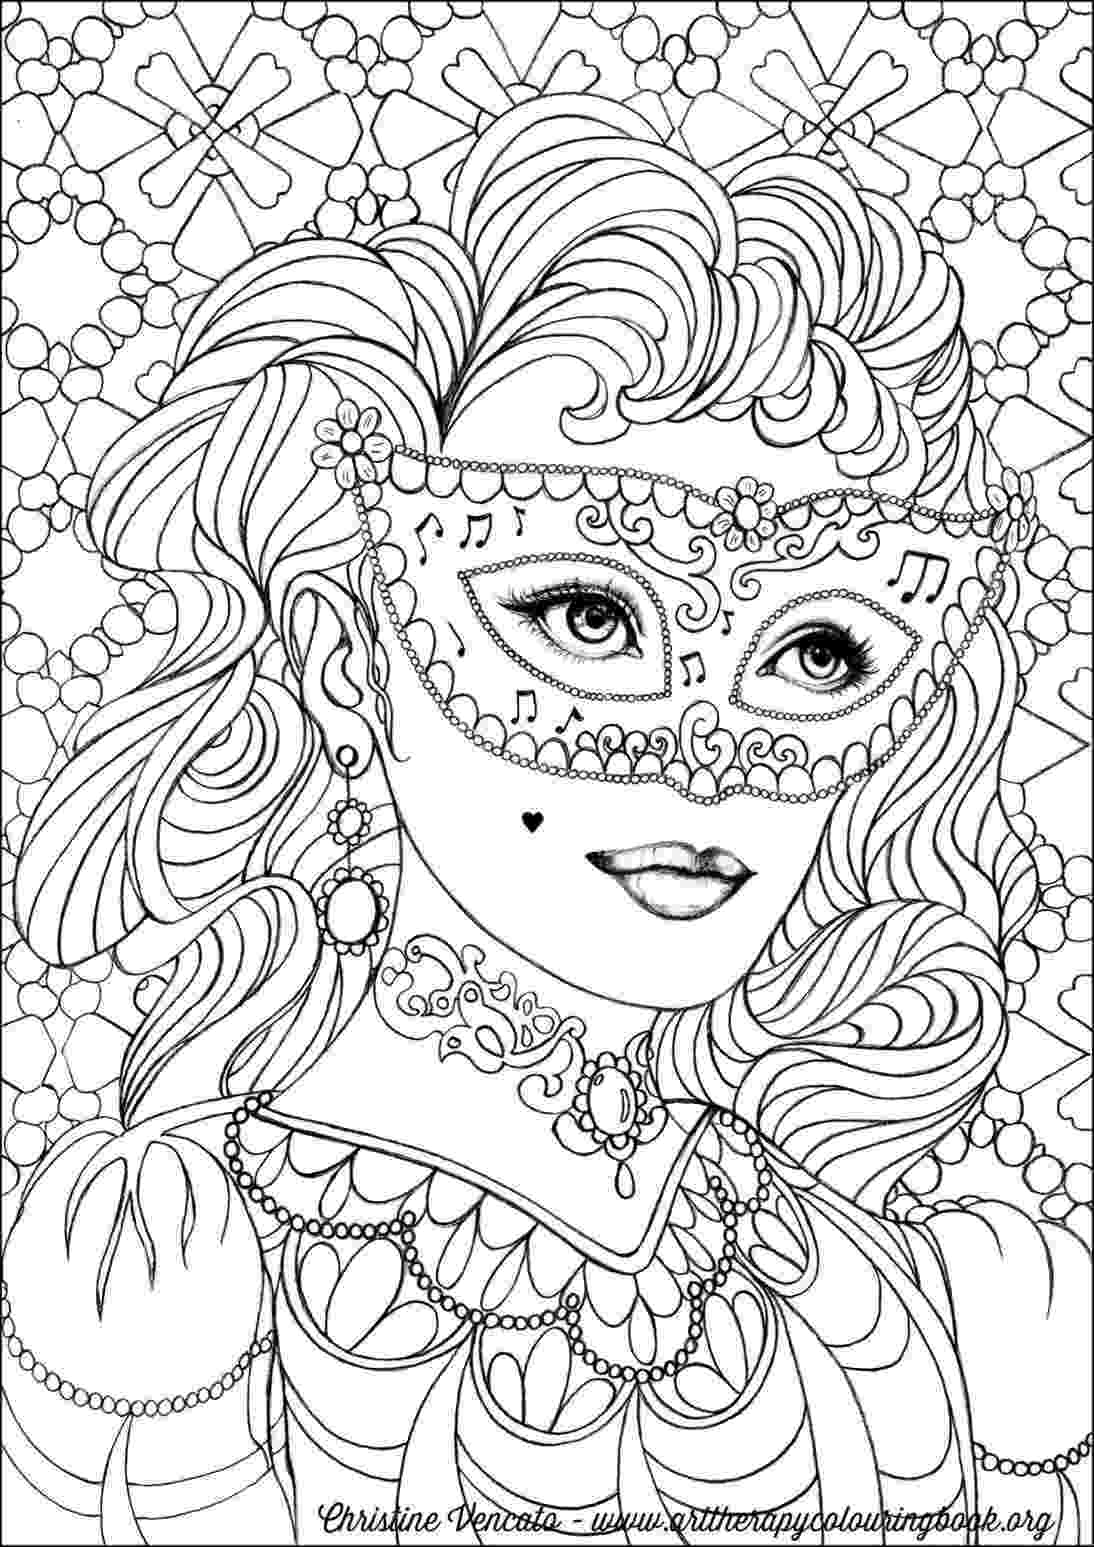 coloring for adults online free freckles the fairy coloring page printable colouring online free coloring for adults